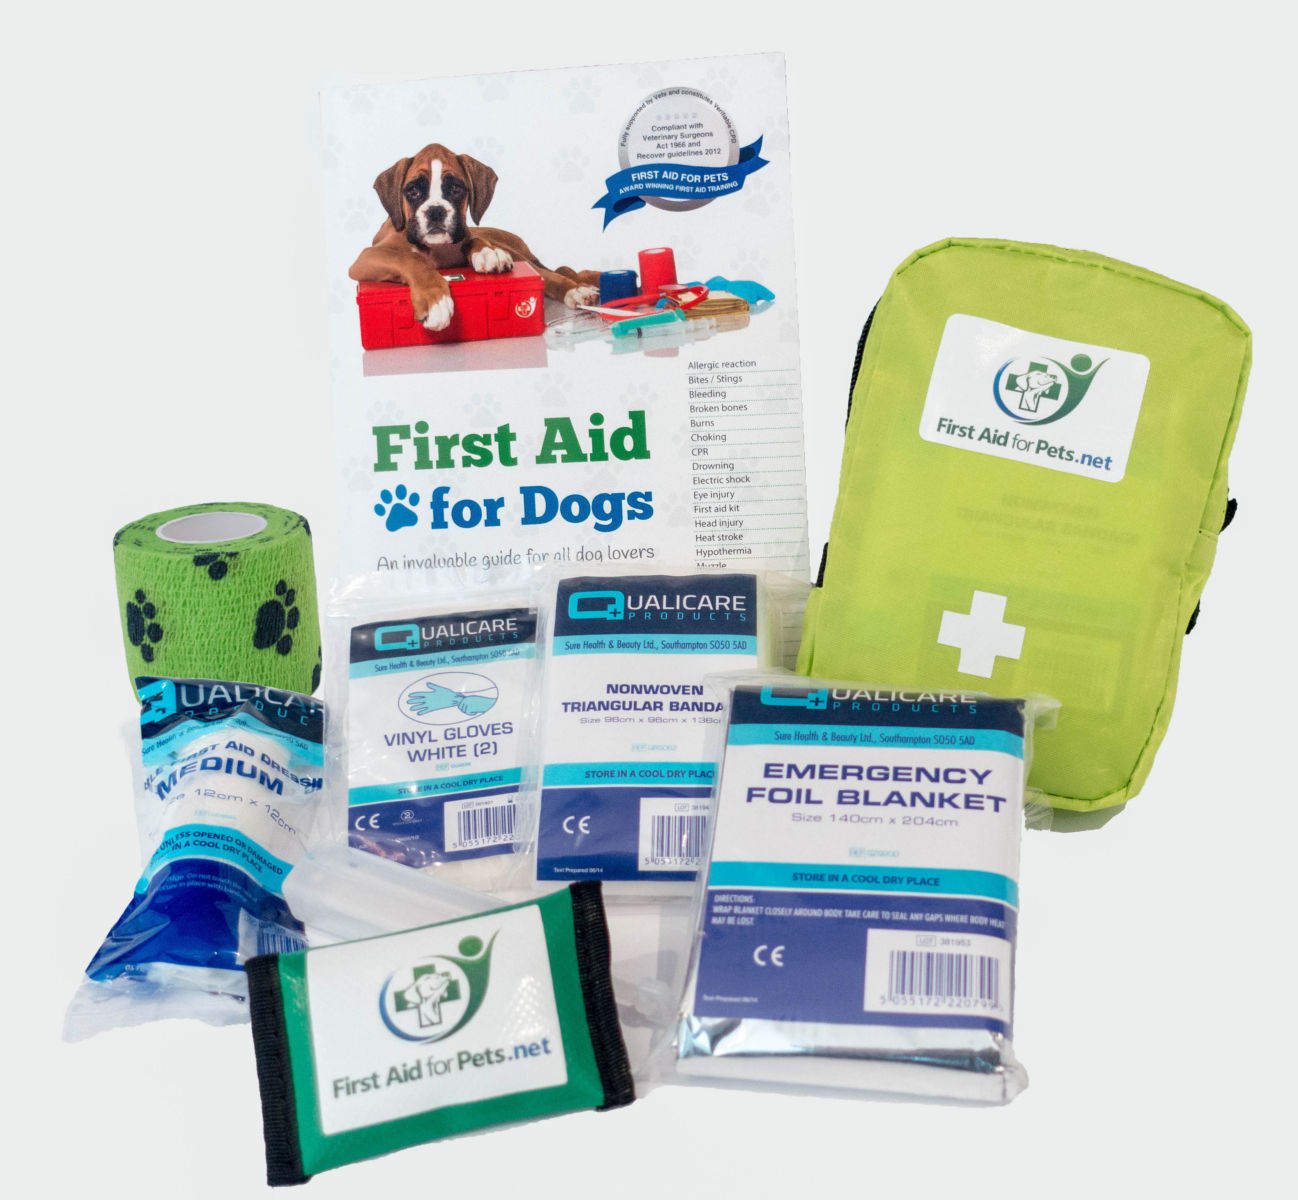 First Aid for Pets - Pet First Aid Kit